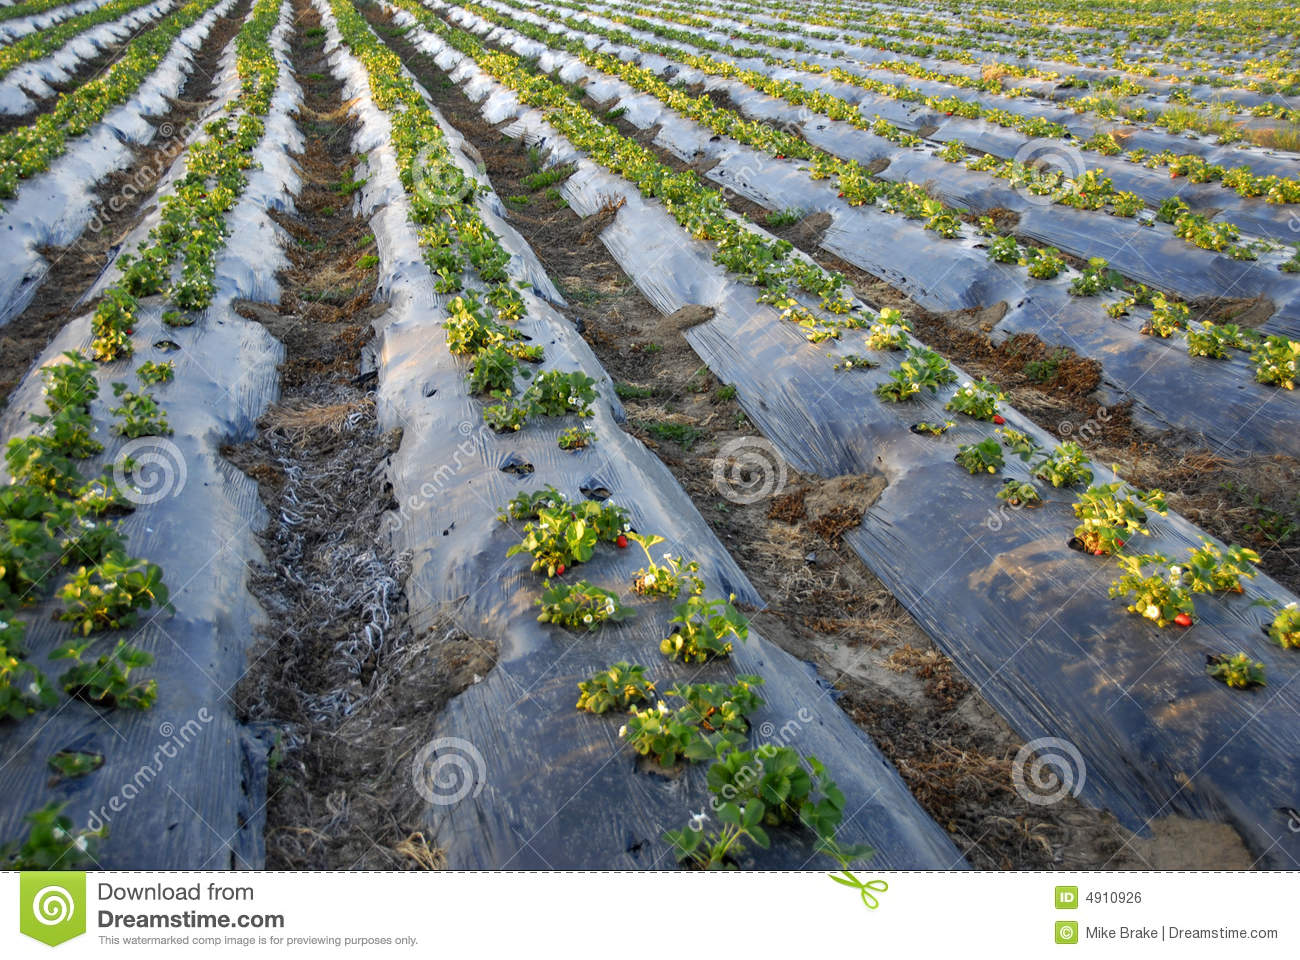 Strawberry Plants Growing Royalty Free Stock Image - Image: 4910926